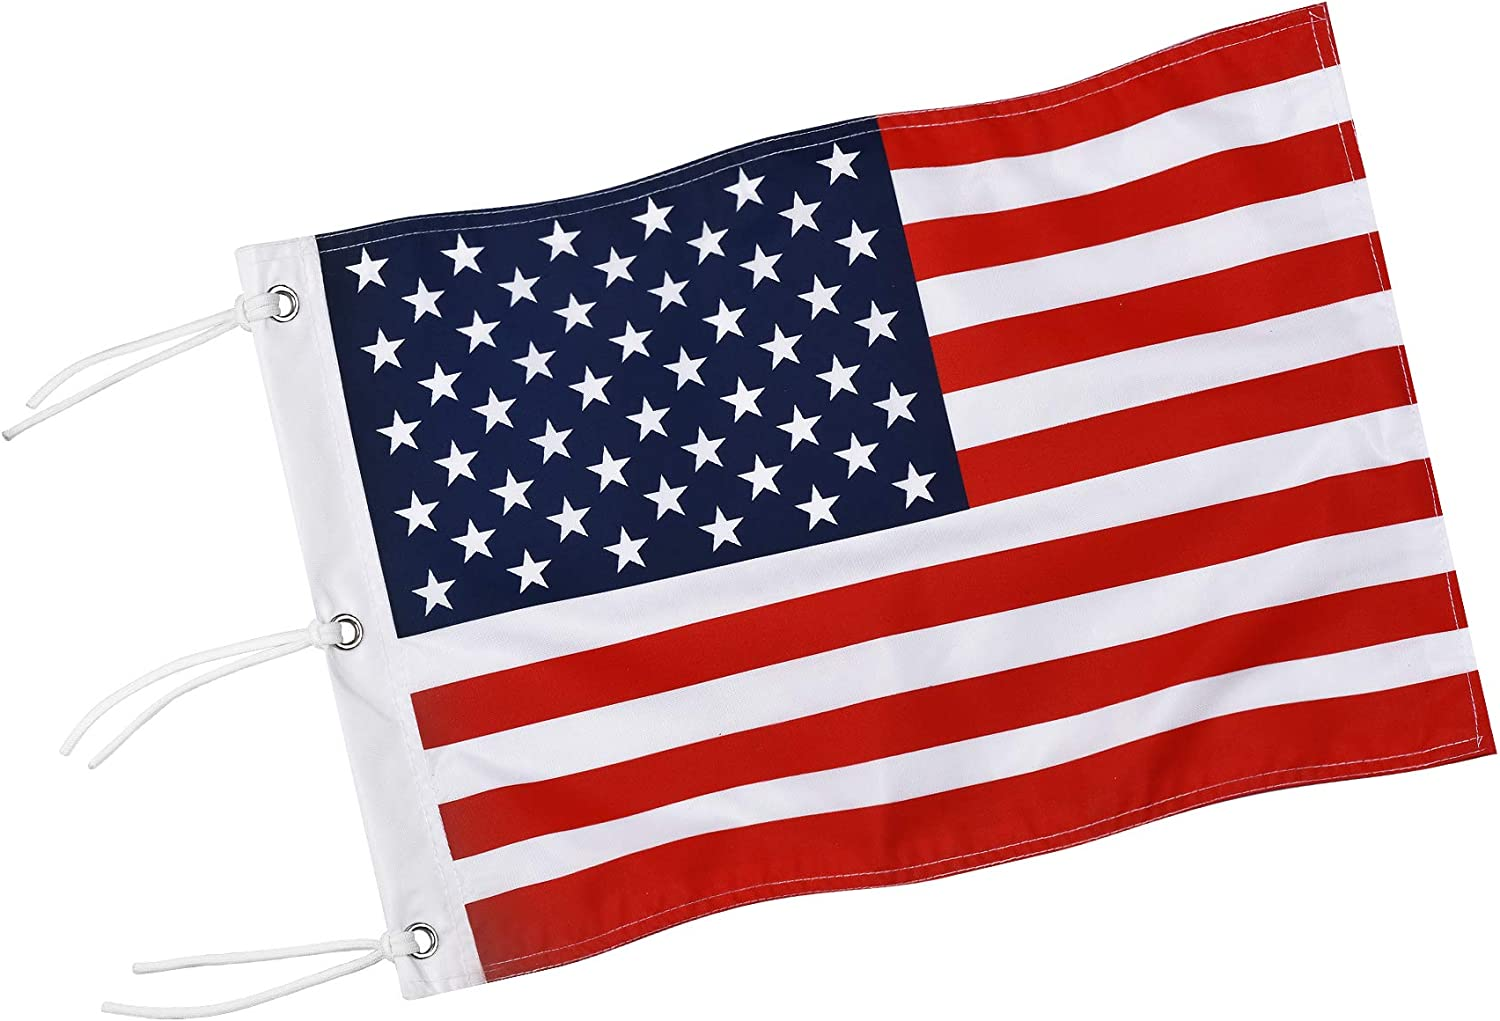 KINGTOP Standard Golf Flag American Pin It is very popular Japan's largest assortment Regul Double-Side